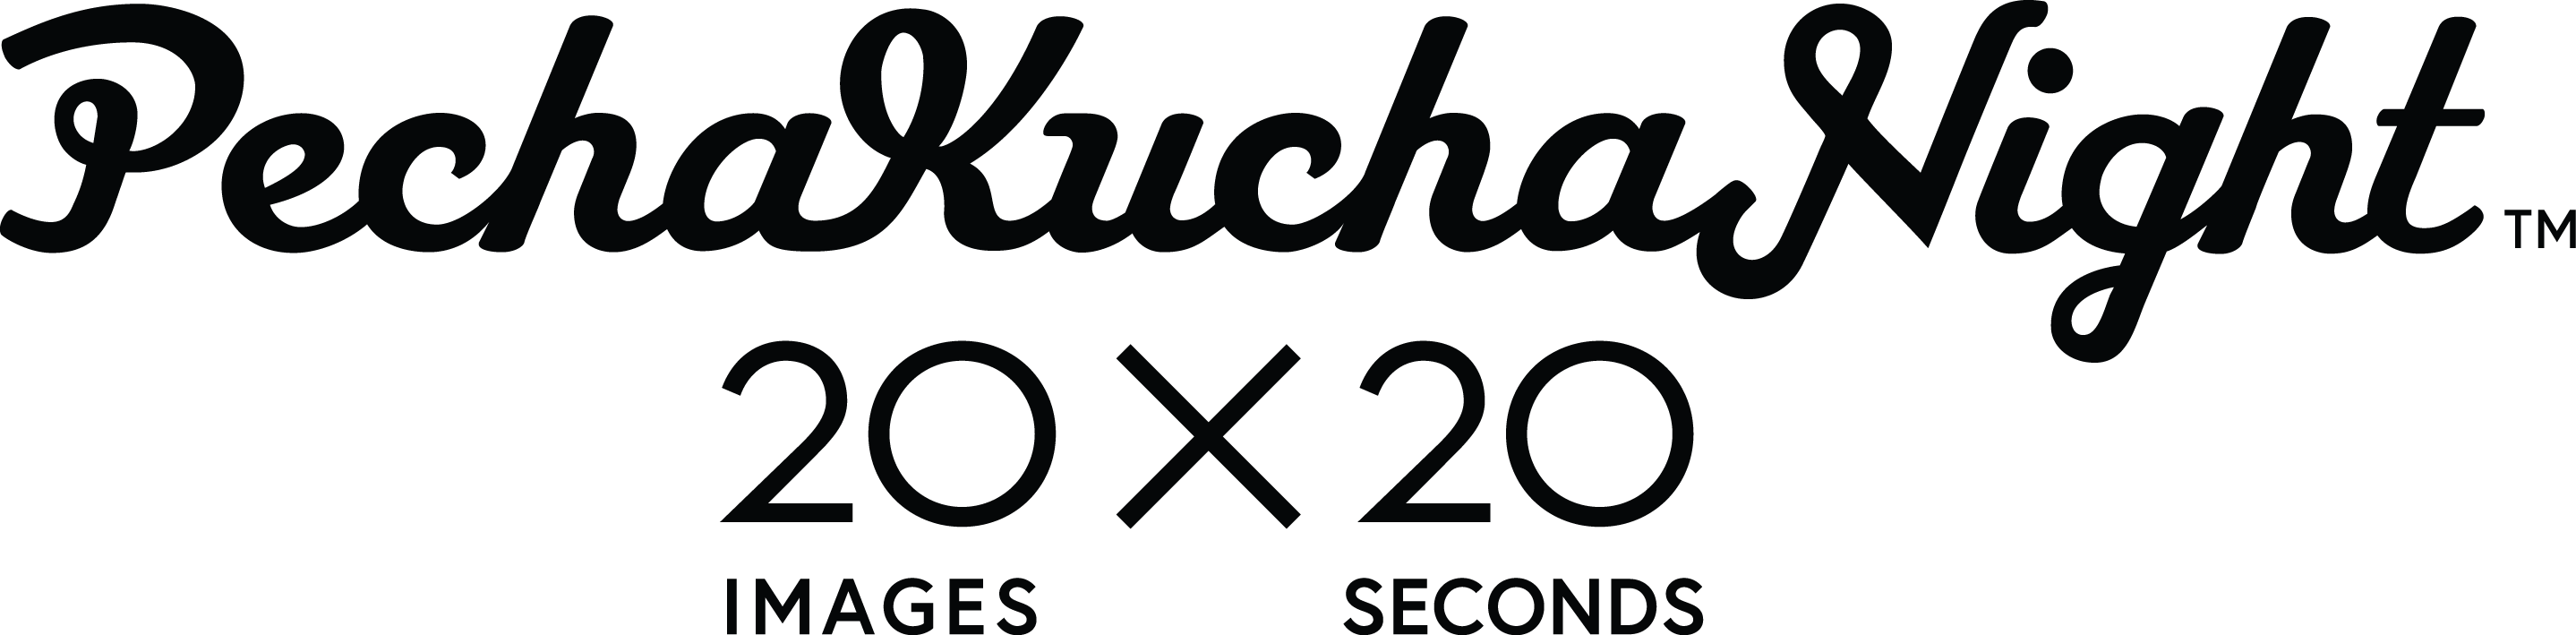 PechaKucha Night Vol. 161